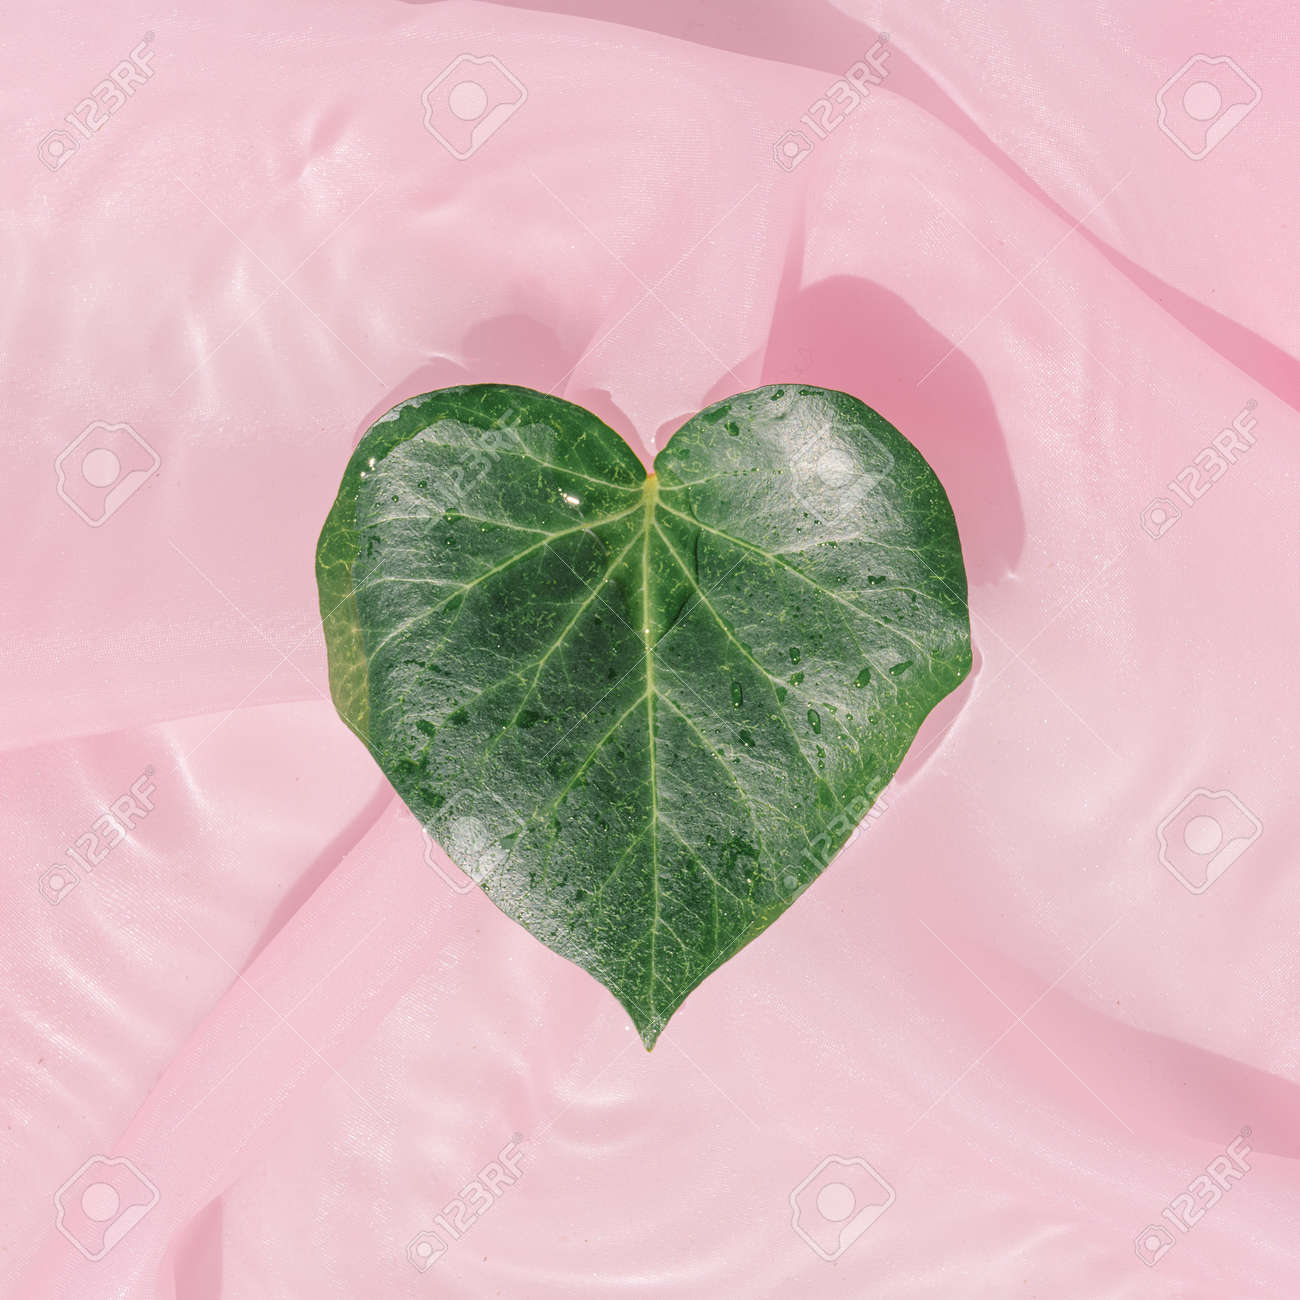 Heart shaped leaf in water with pink silk fabric. Minimal creative valentines or woman's day concept. Nature flat lay. - 162580162